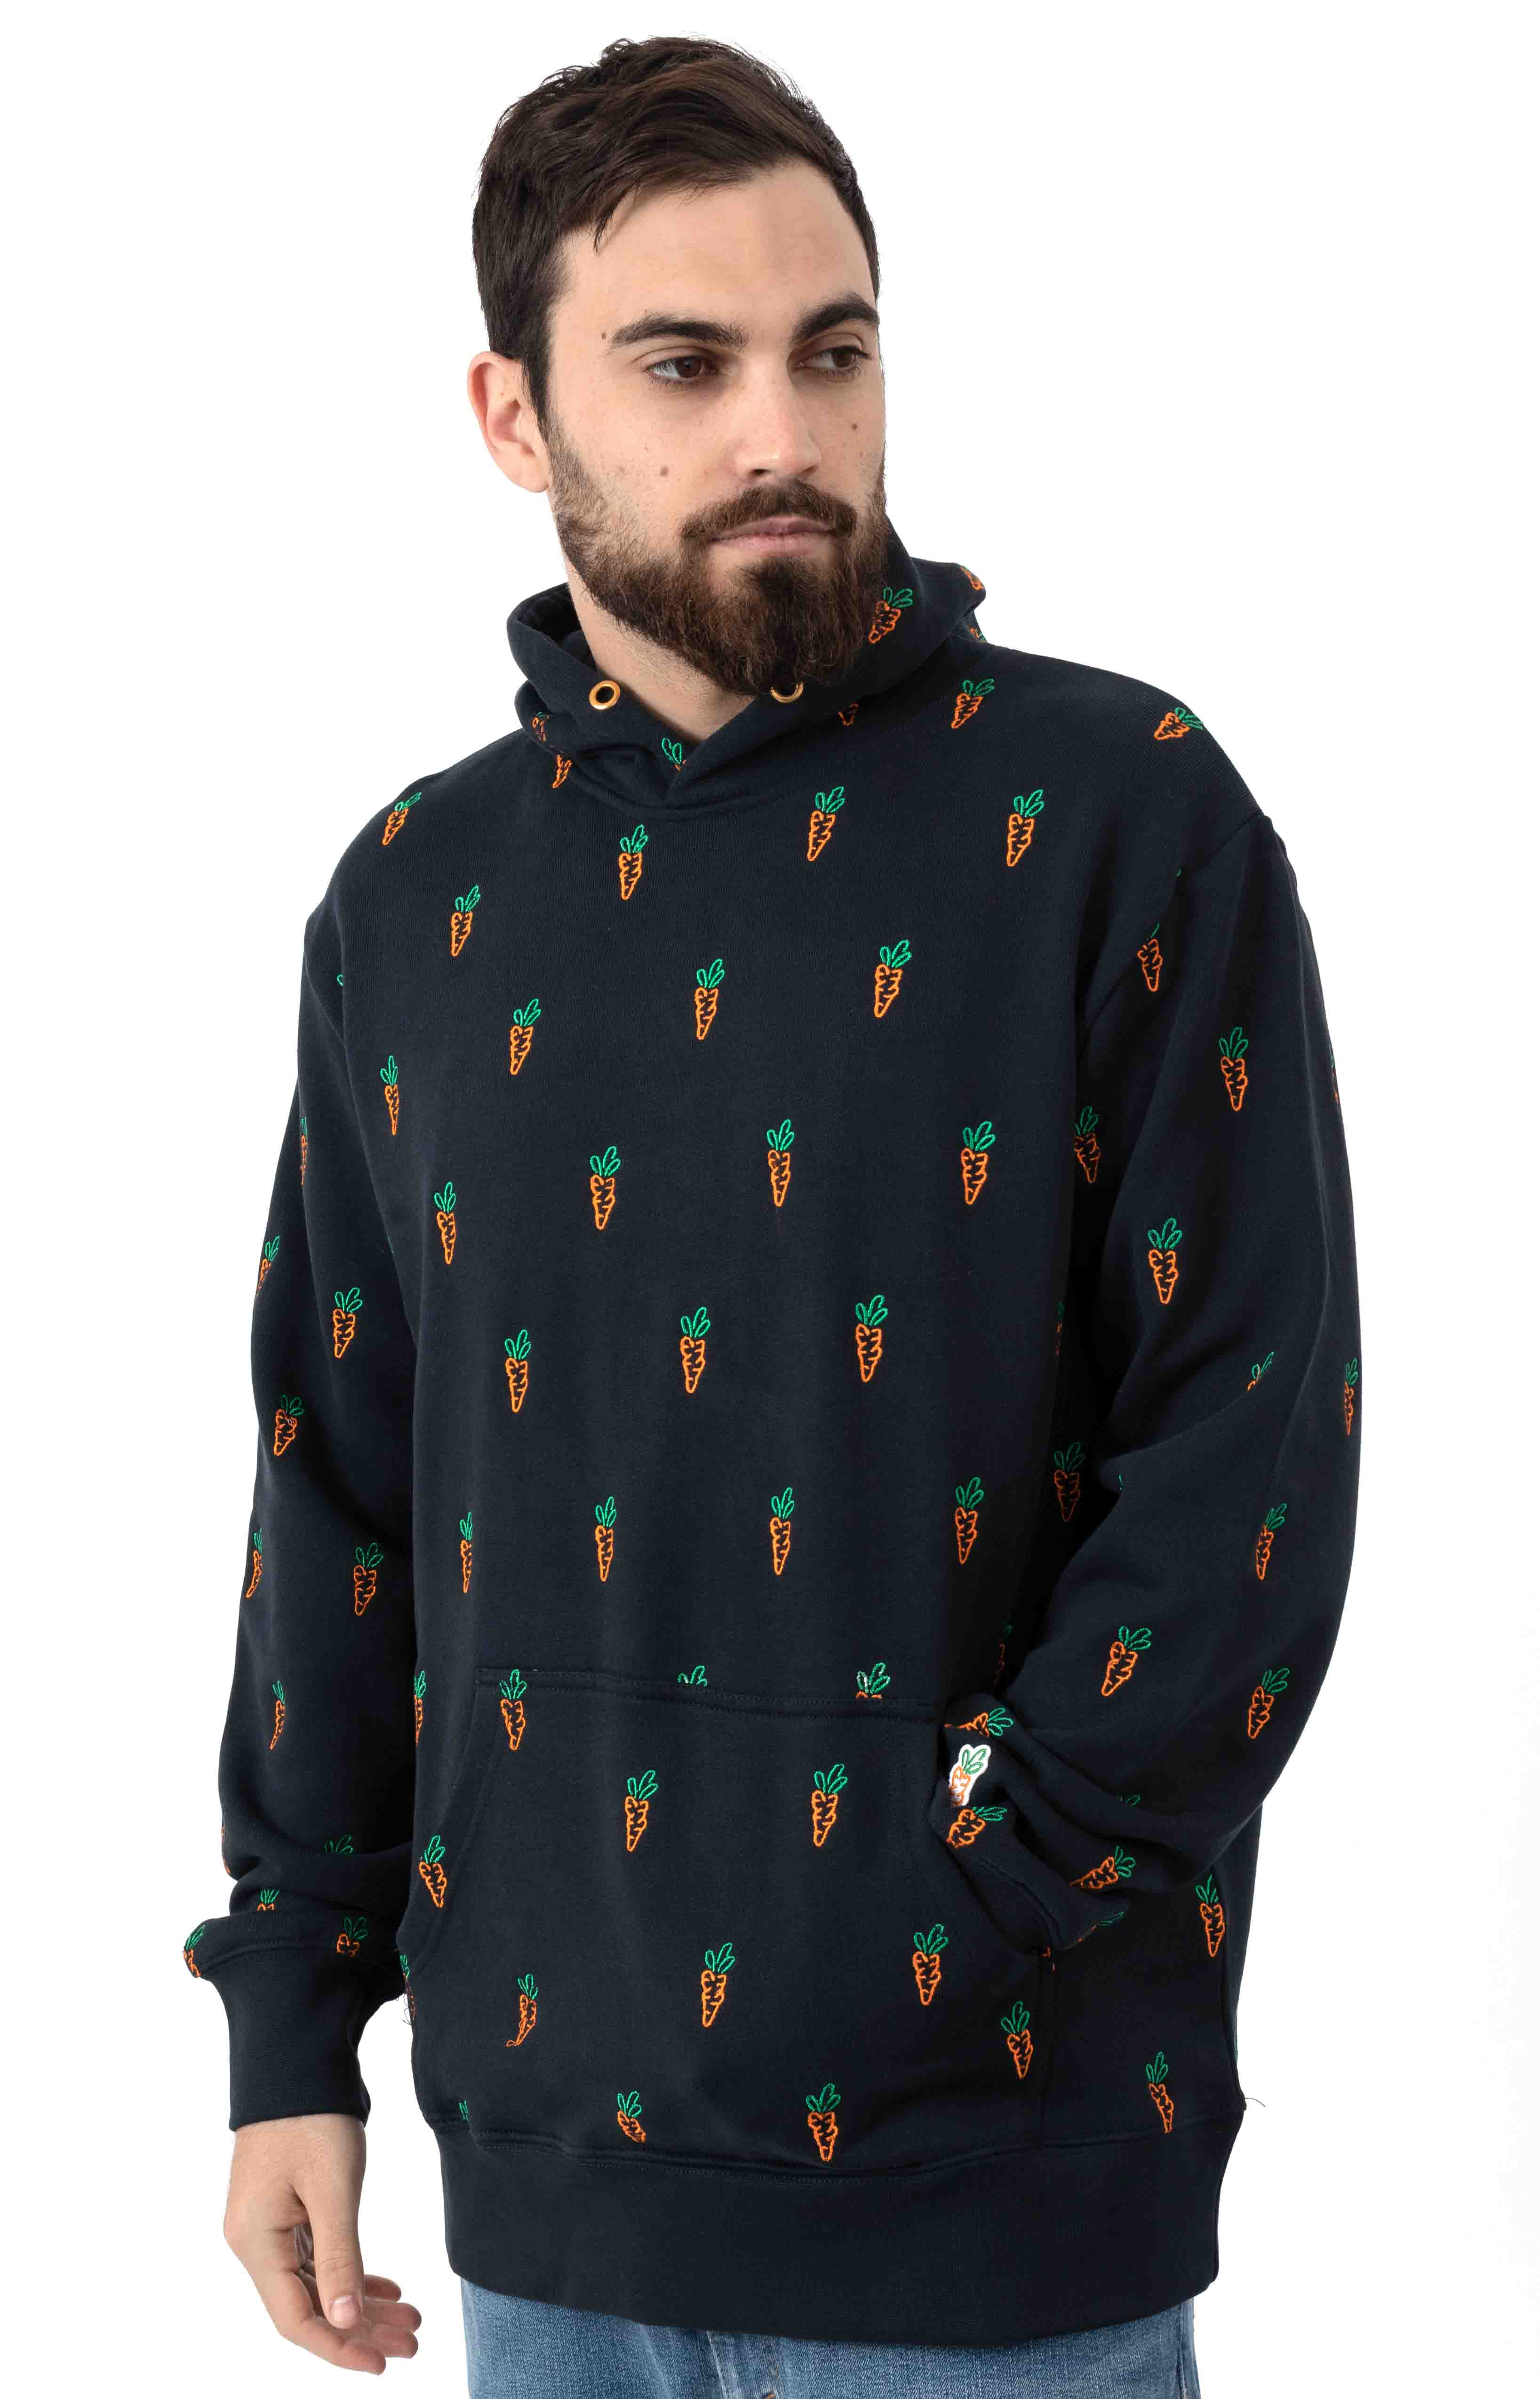 All Over Carrot Pullover Hoodie - Navy 2